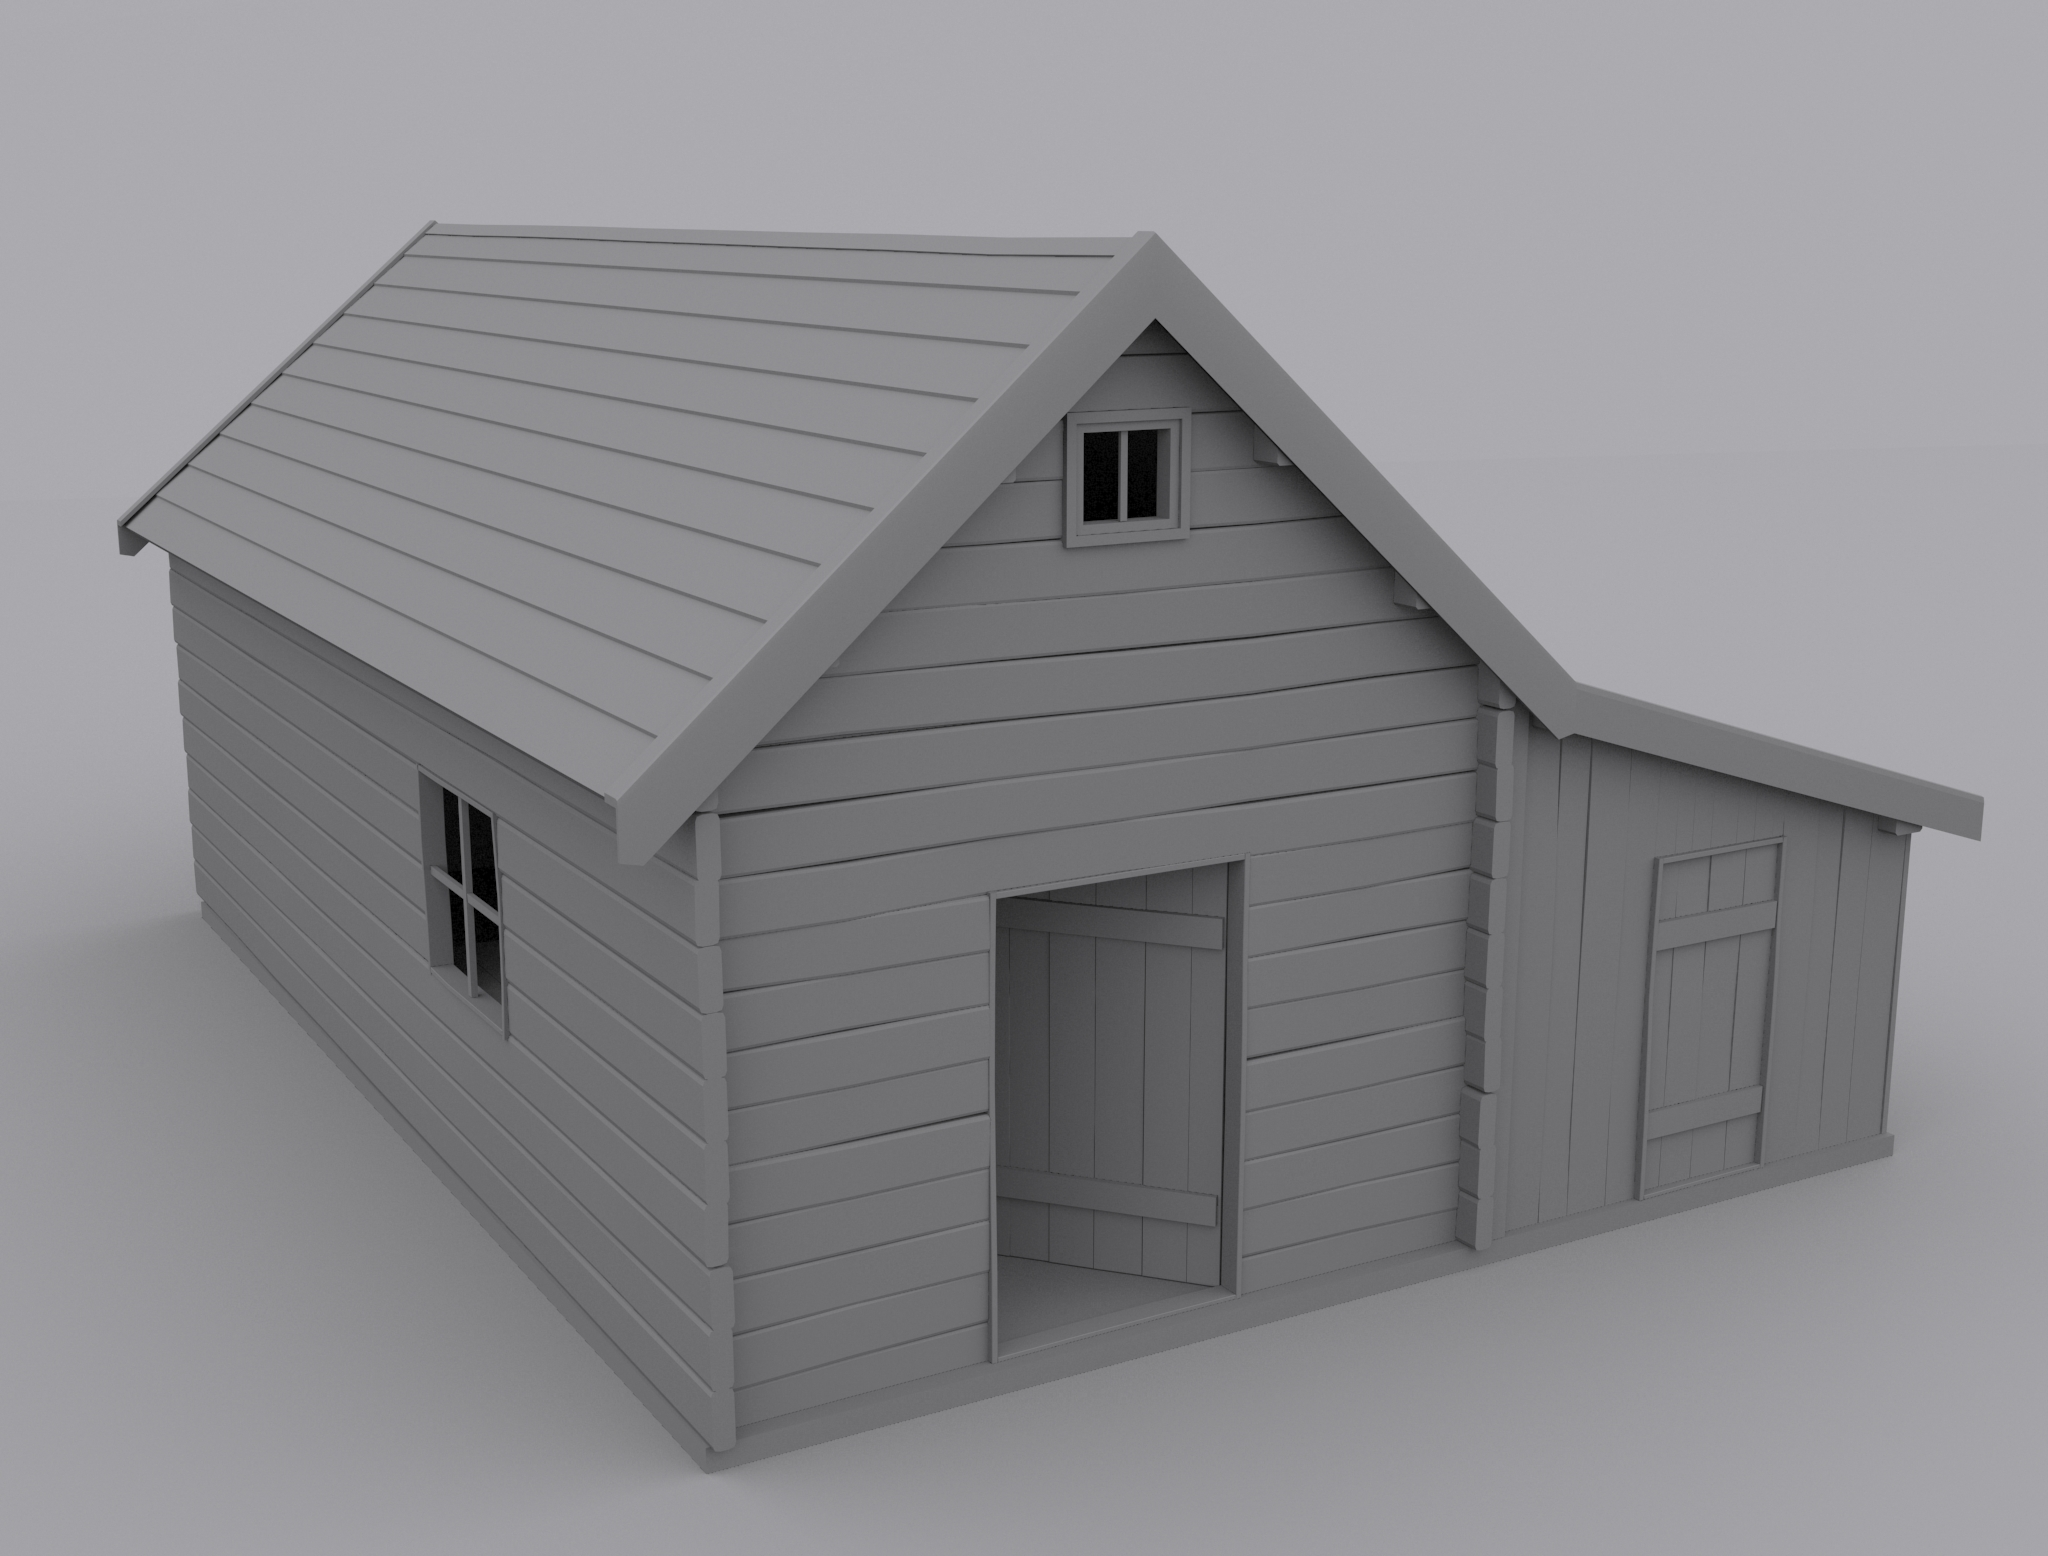 old house 3d model max 1 - 3d House Models